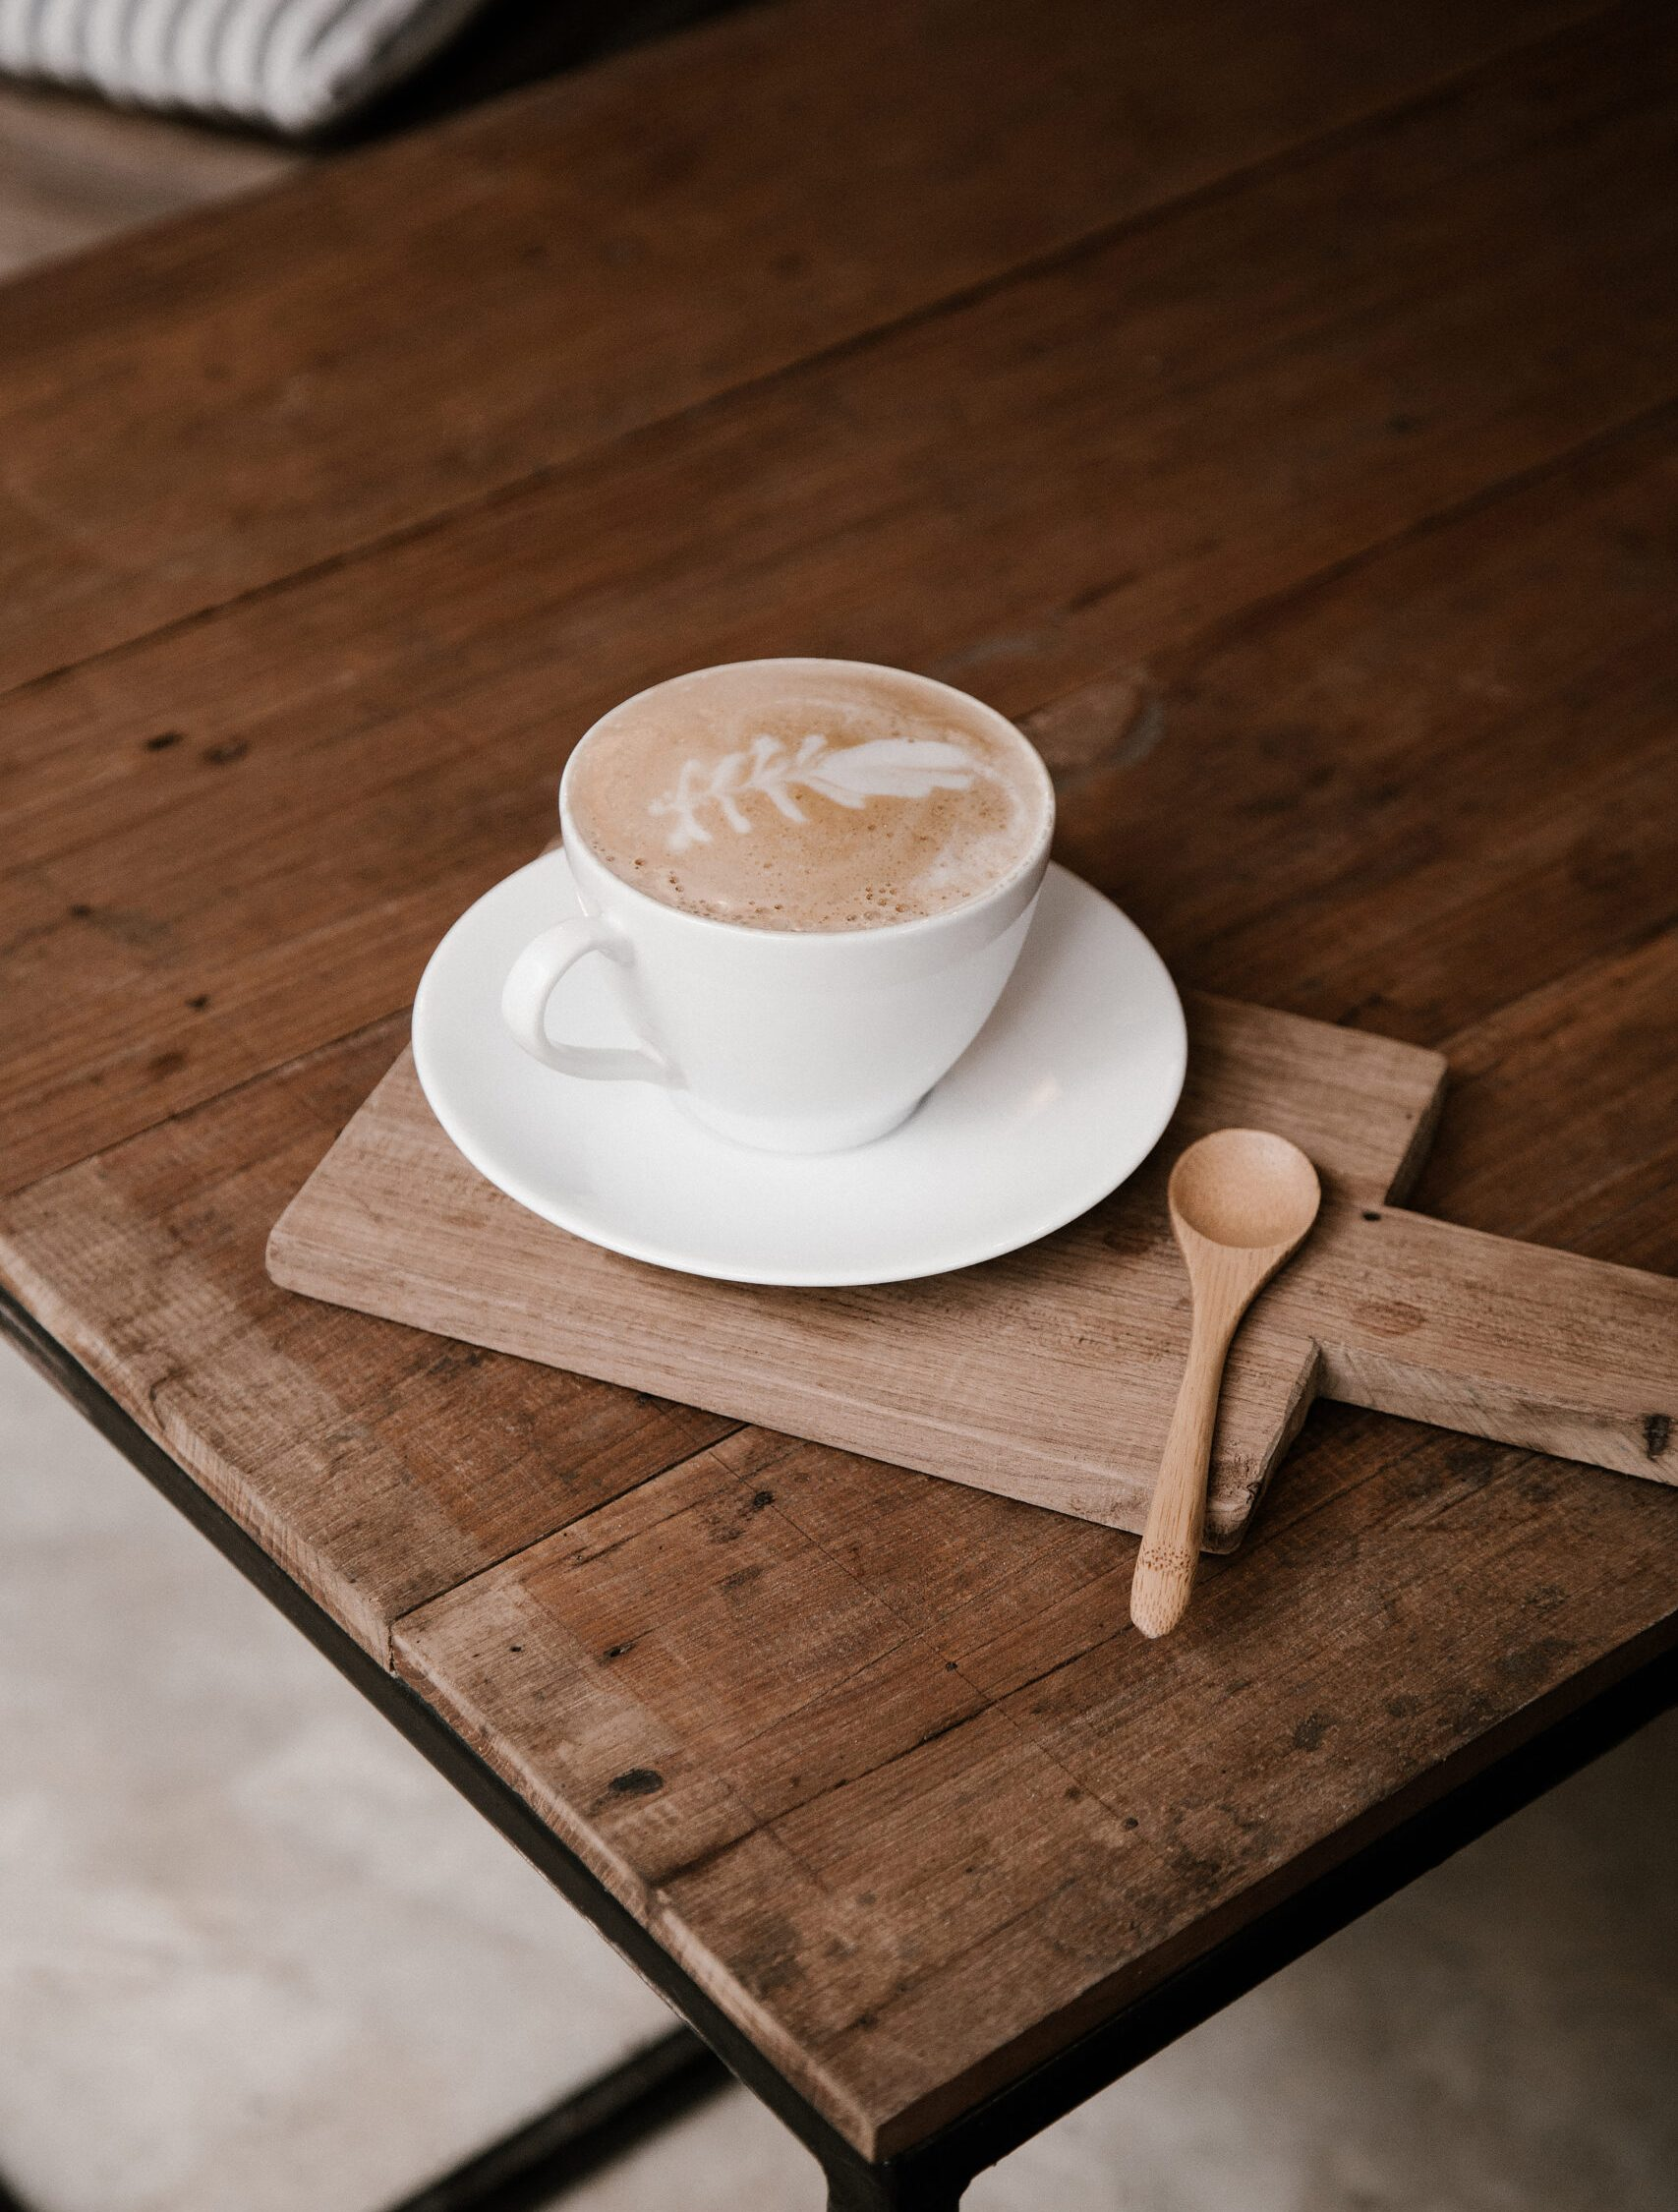 coffee on a brown table with a wooden spoon.